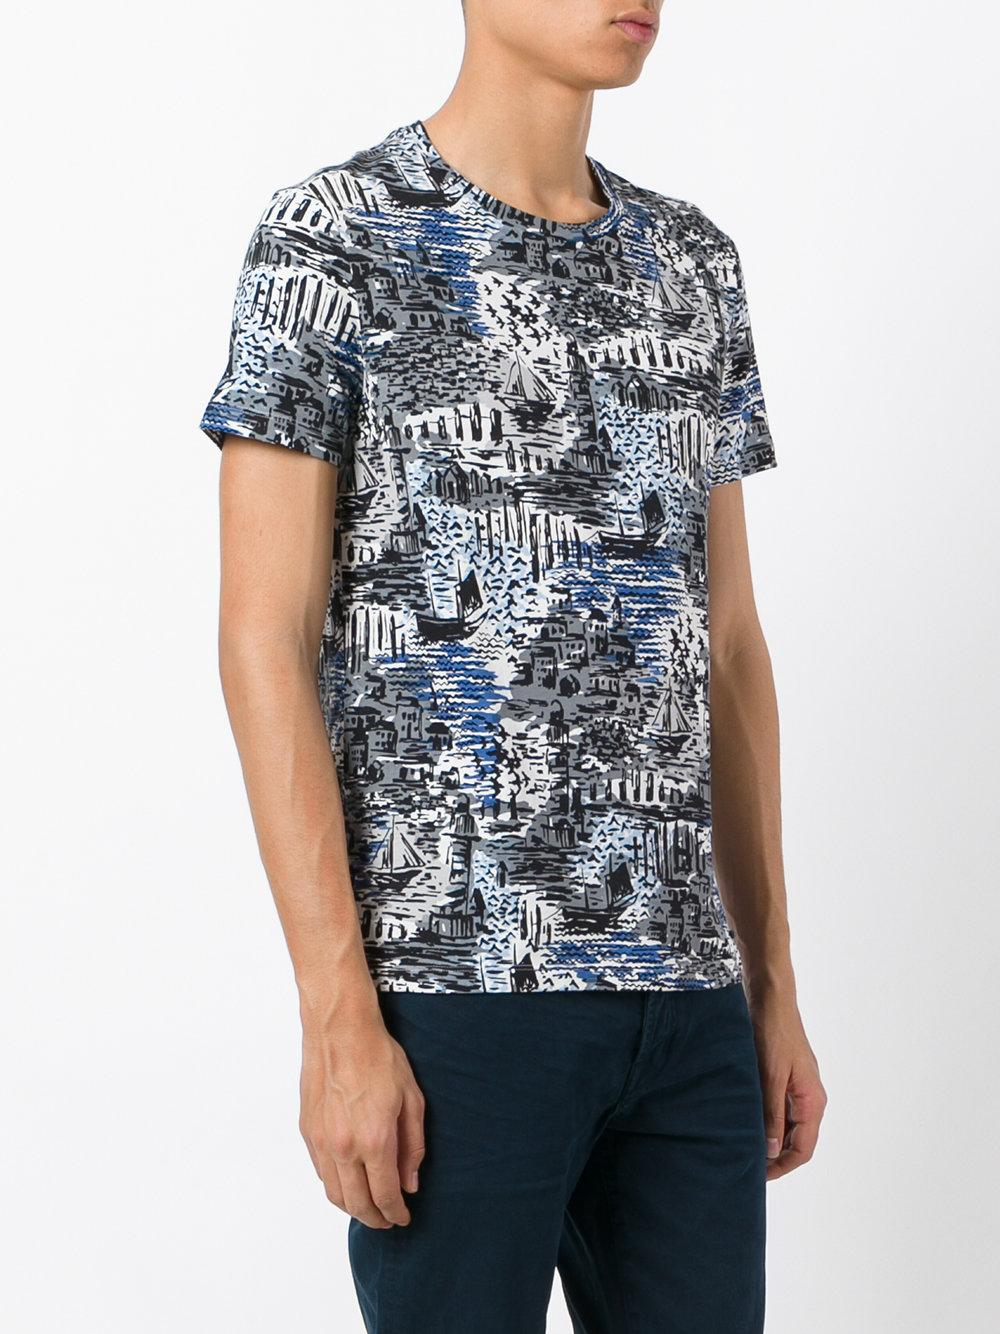 Lyst burberry printed t shirt in blue for men for T shirt burberry men